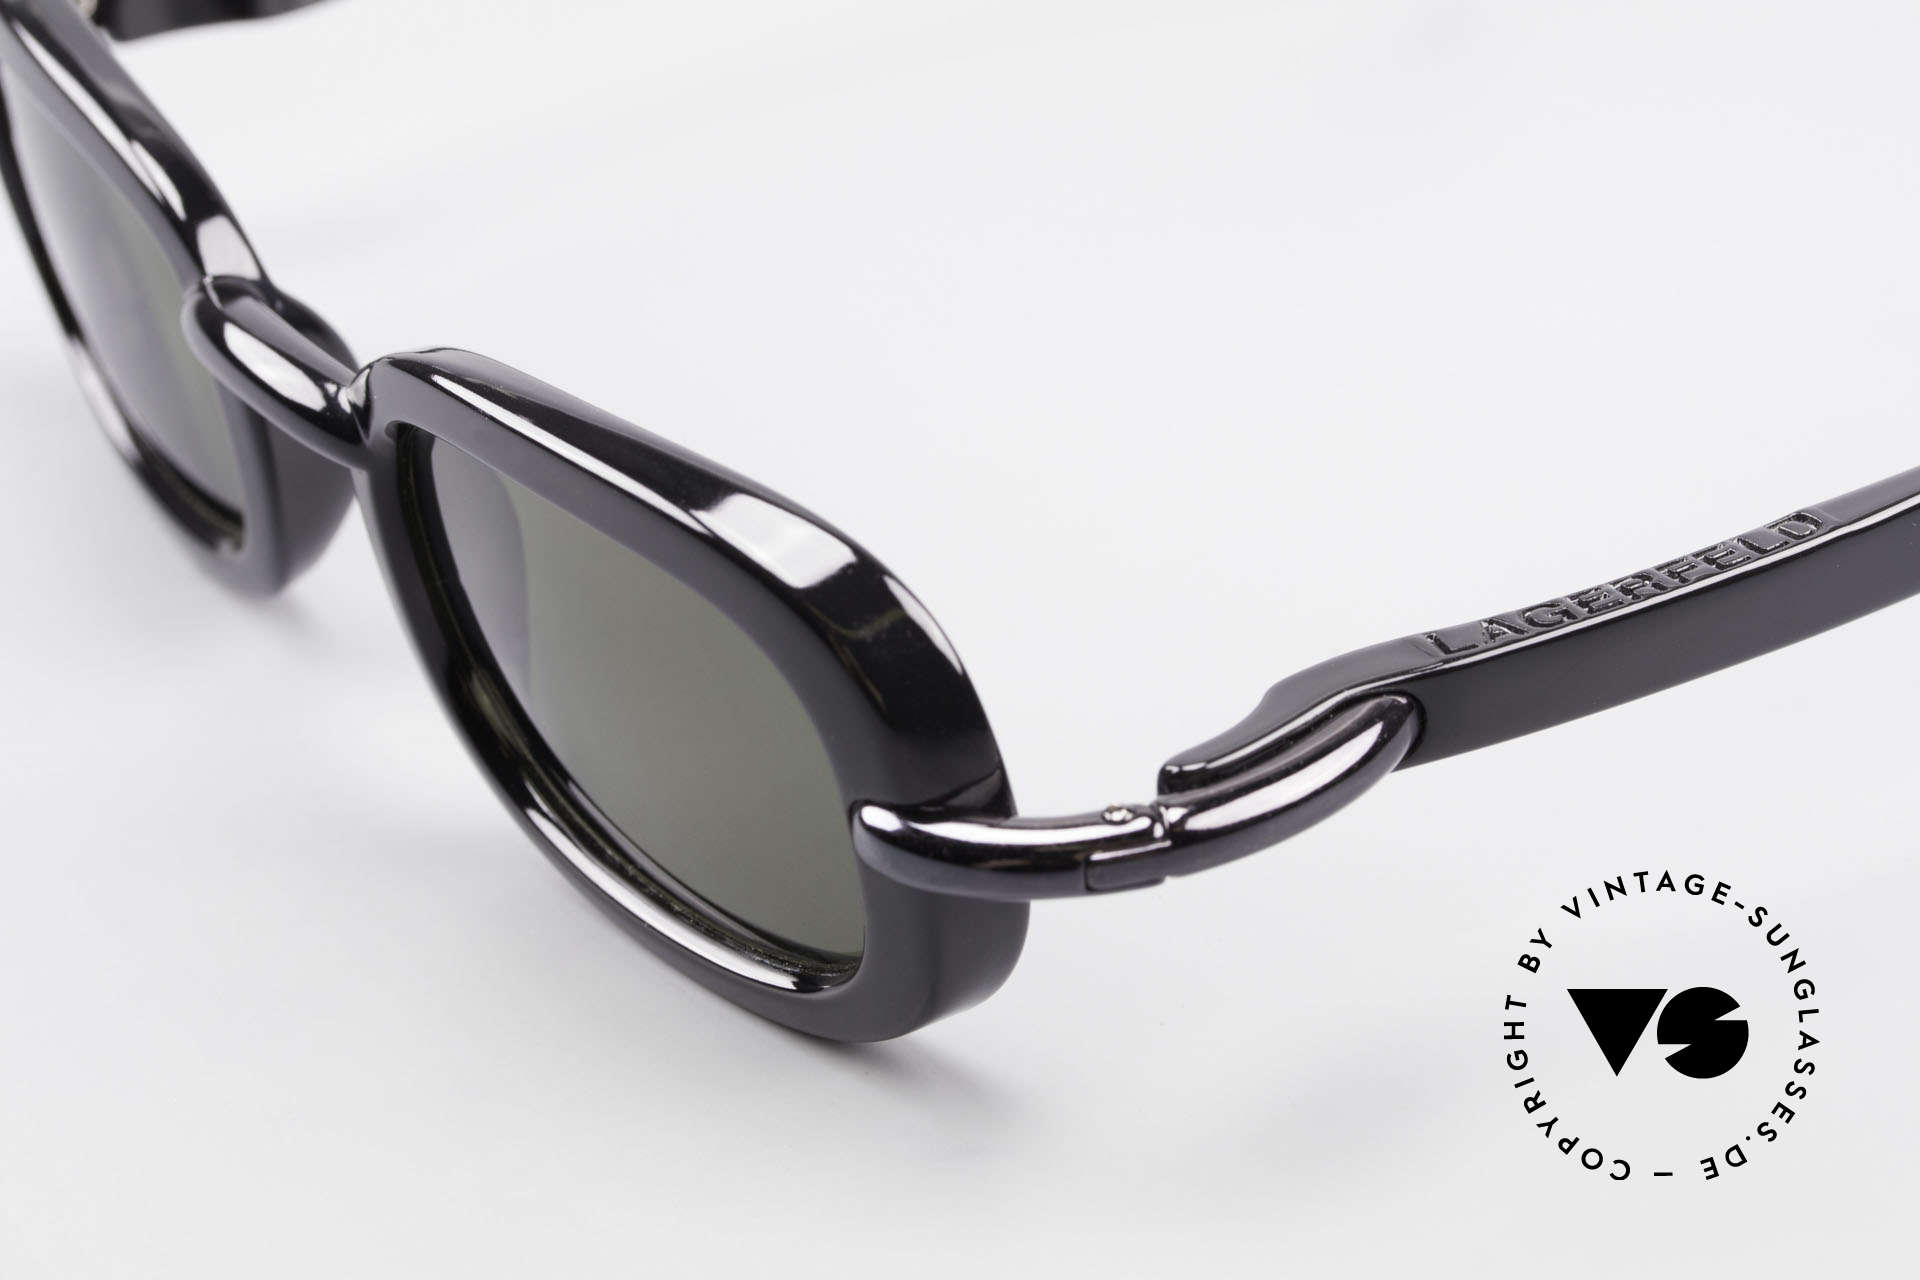 Karl Lagerfeld 4117 Rare 90's Ladies Sunglasses, still unworn (just like all our RARE vintage sunglasses), Made for Women